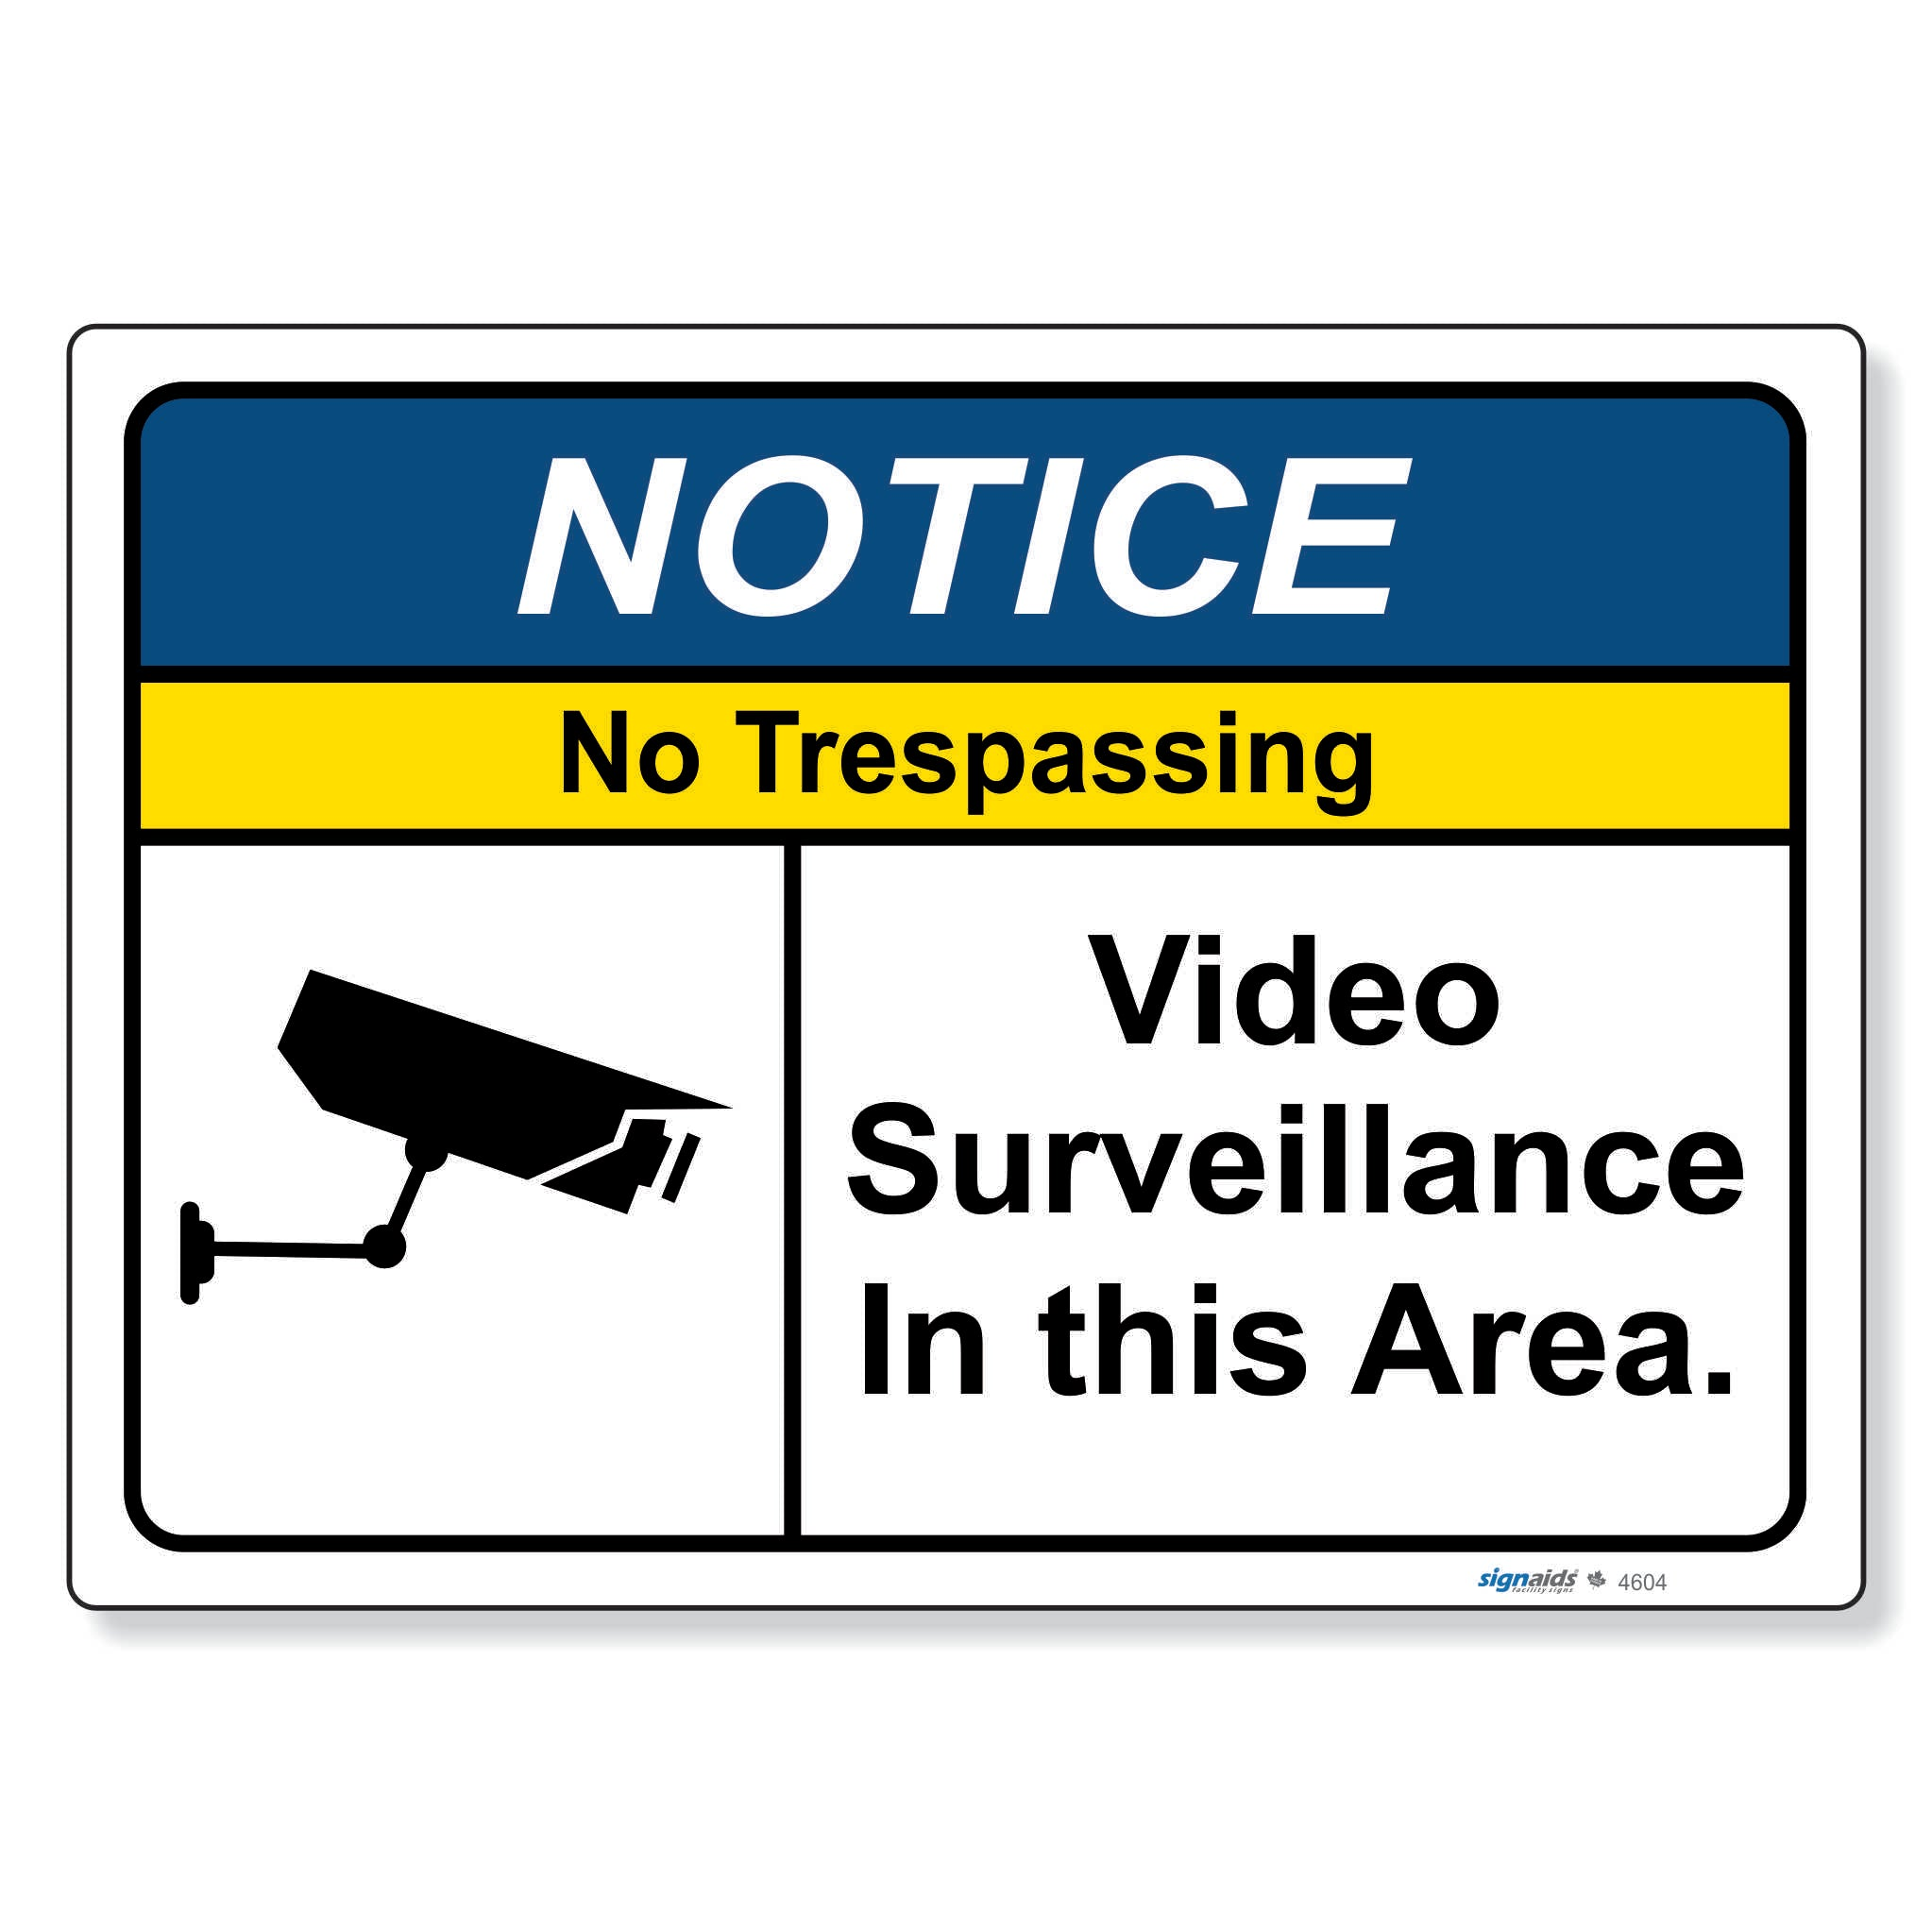 Notice - No Trespassing Video Surveillance